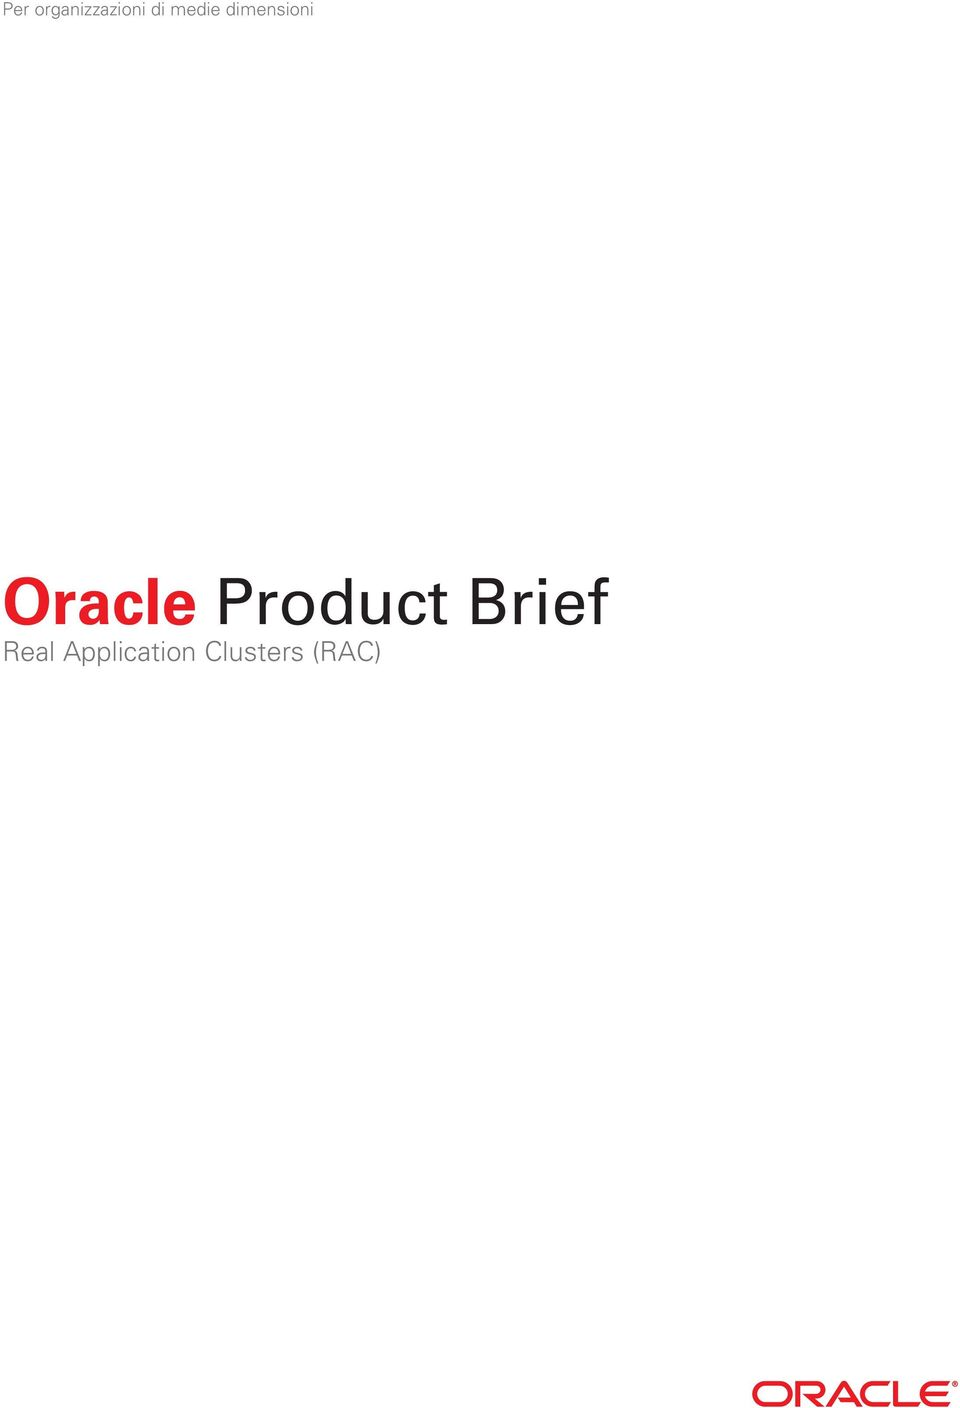 Oracle Product Brief